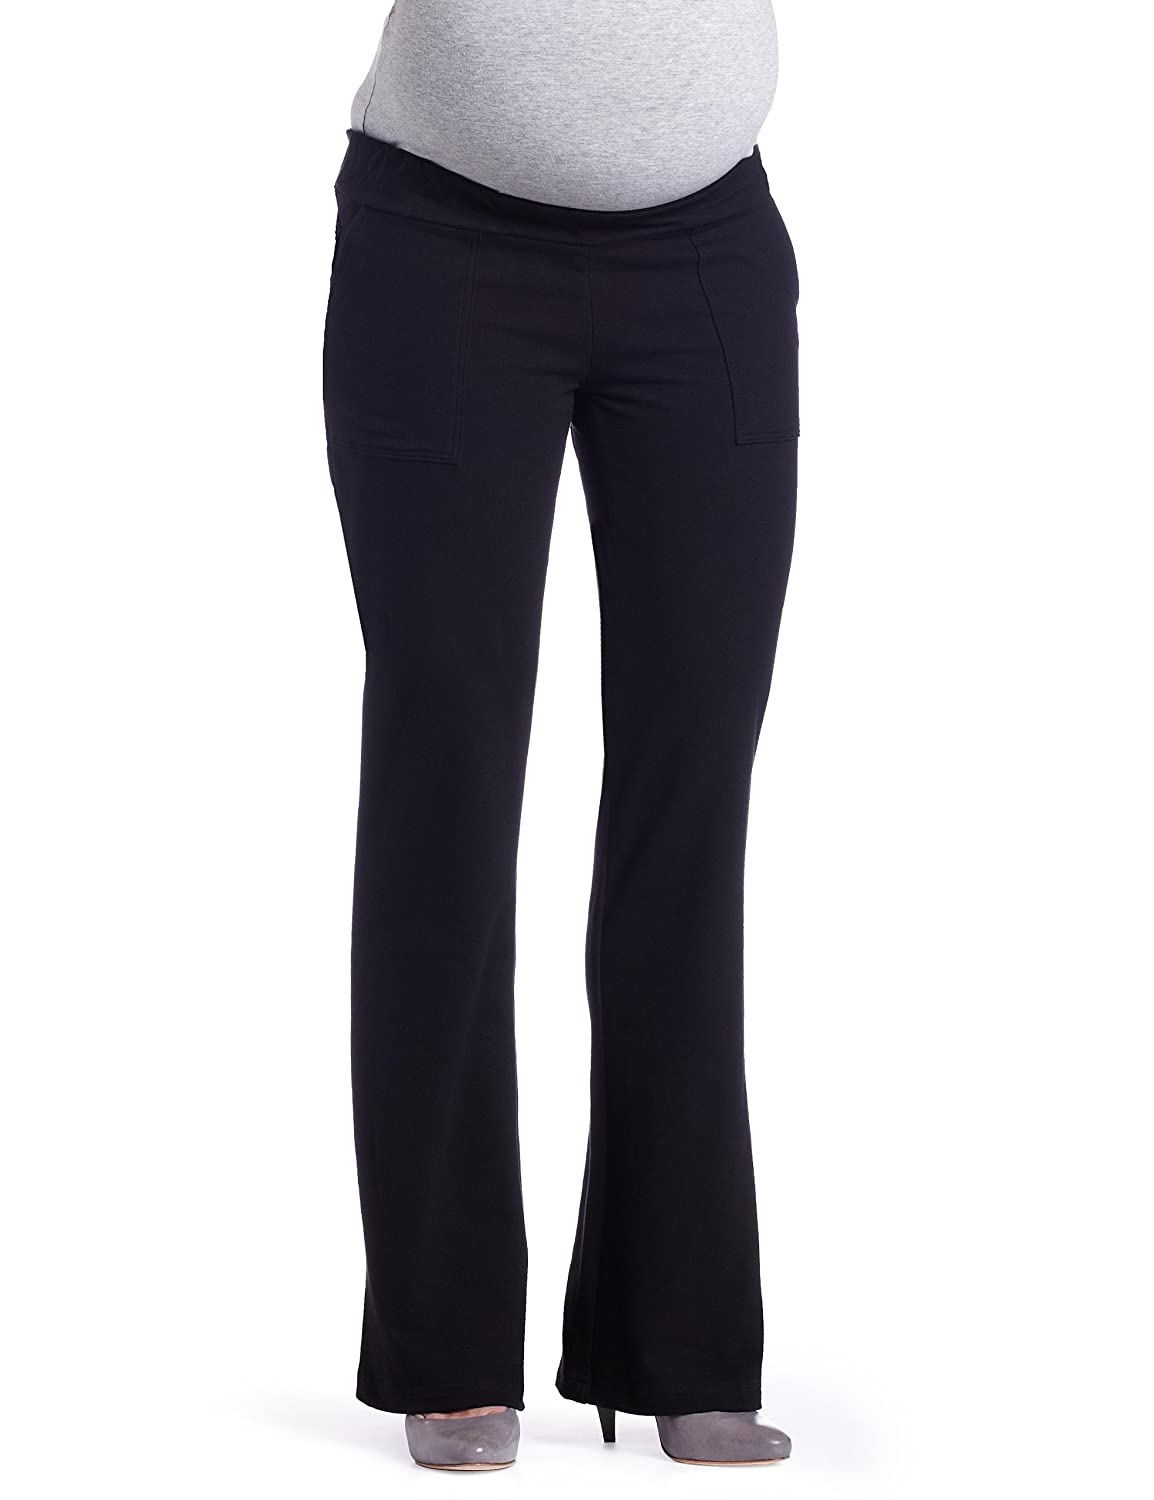 Everly Grey Women's Maternity Laura Pants Black Small Everly Grey - Kalia Partners P1002